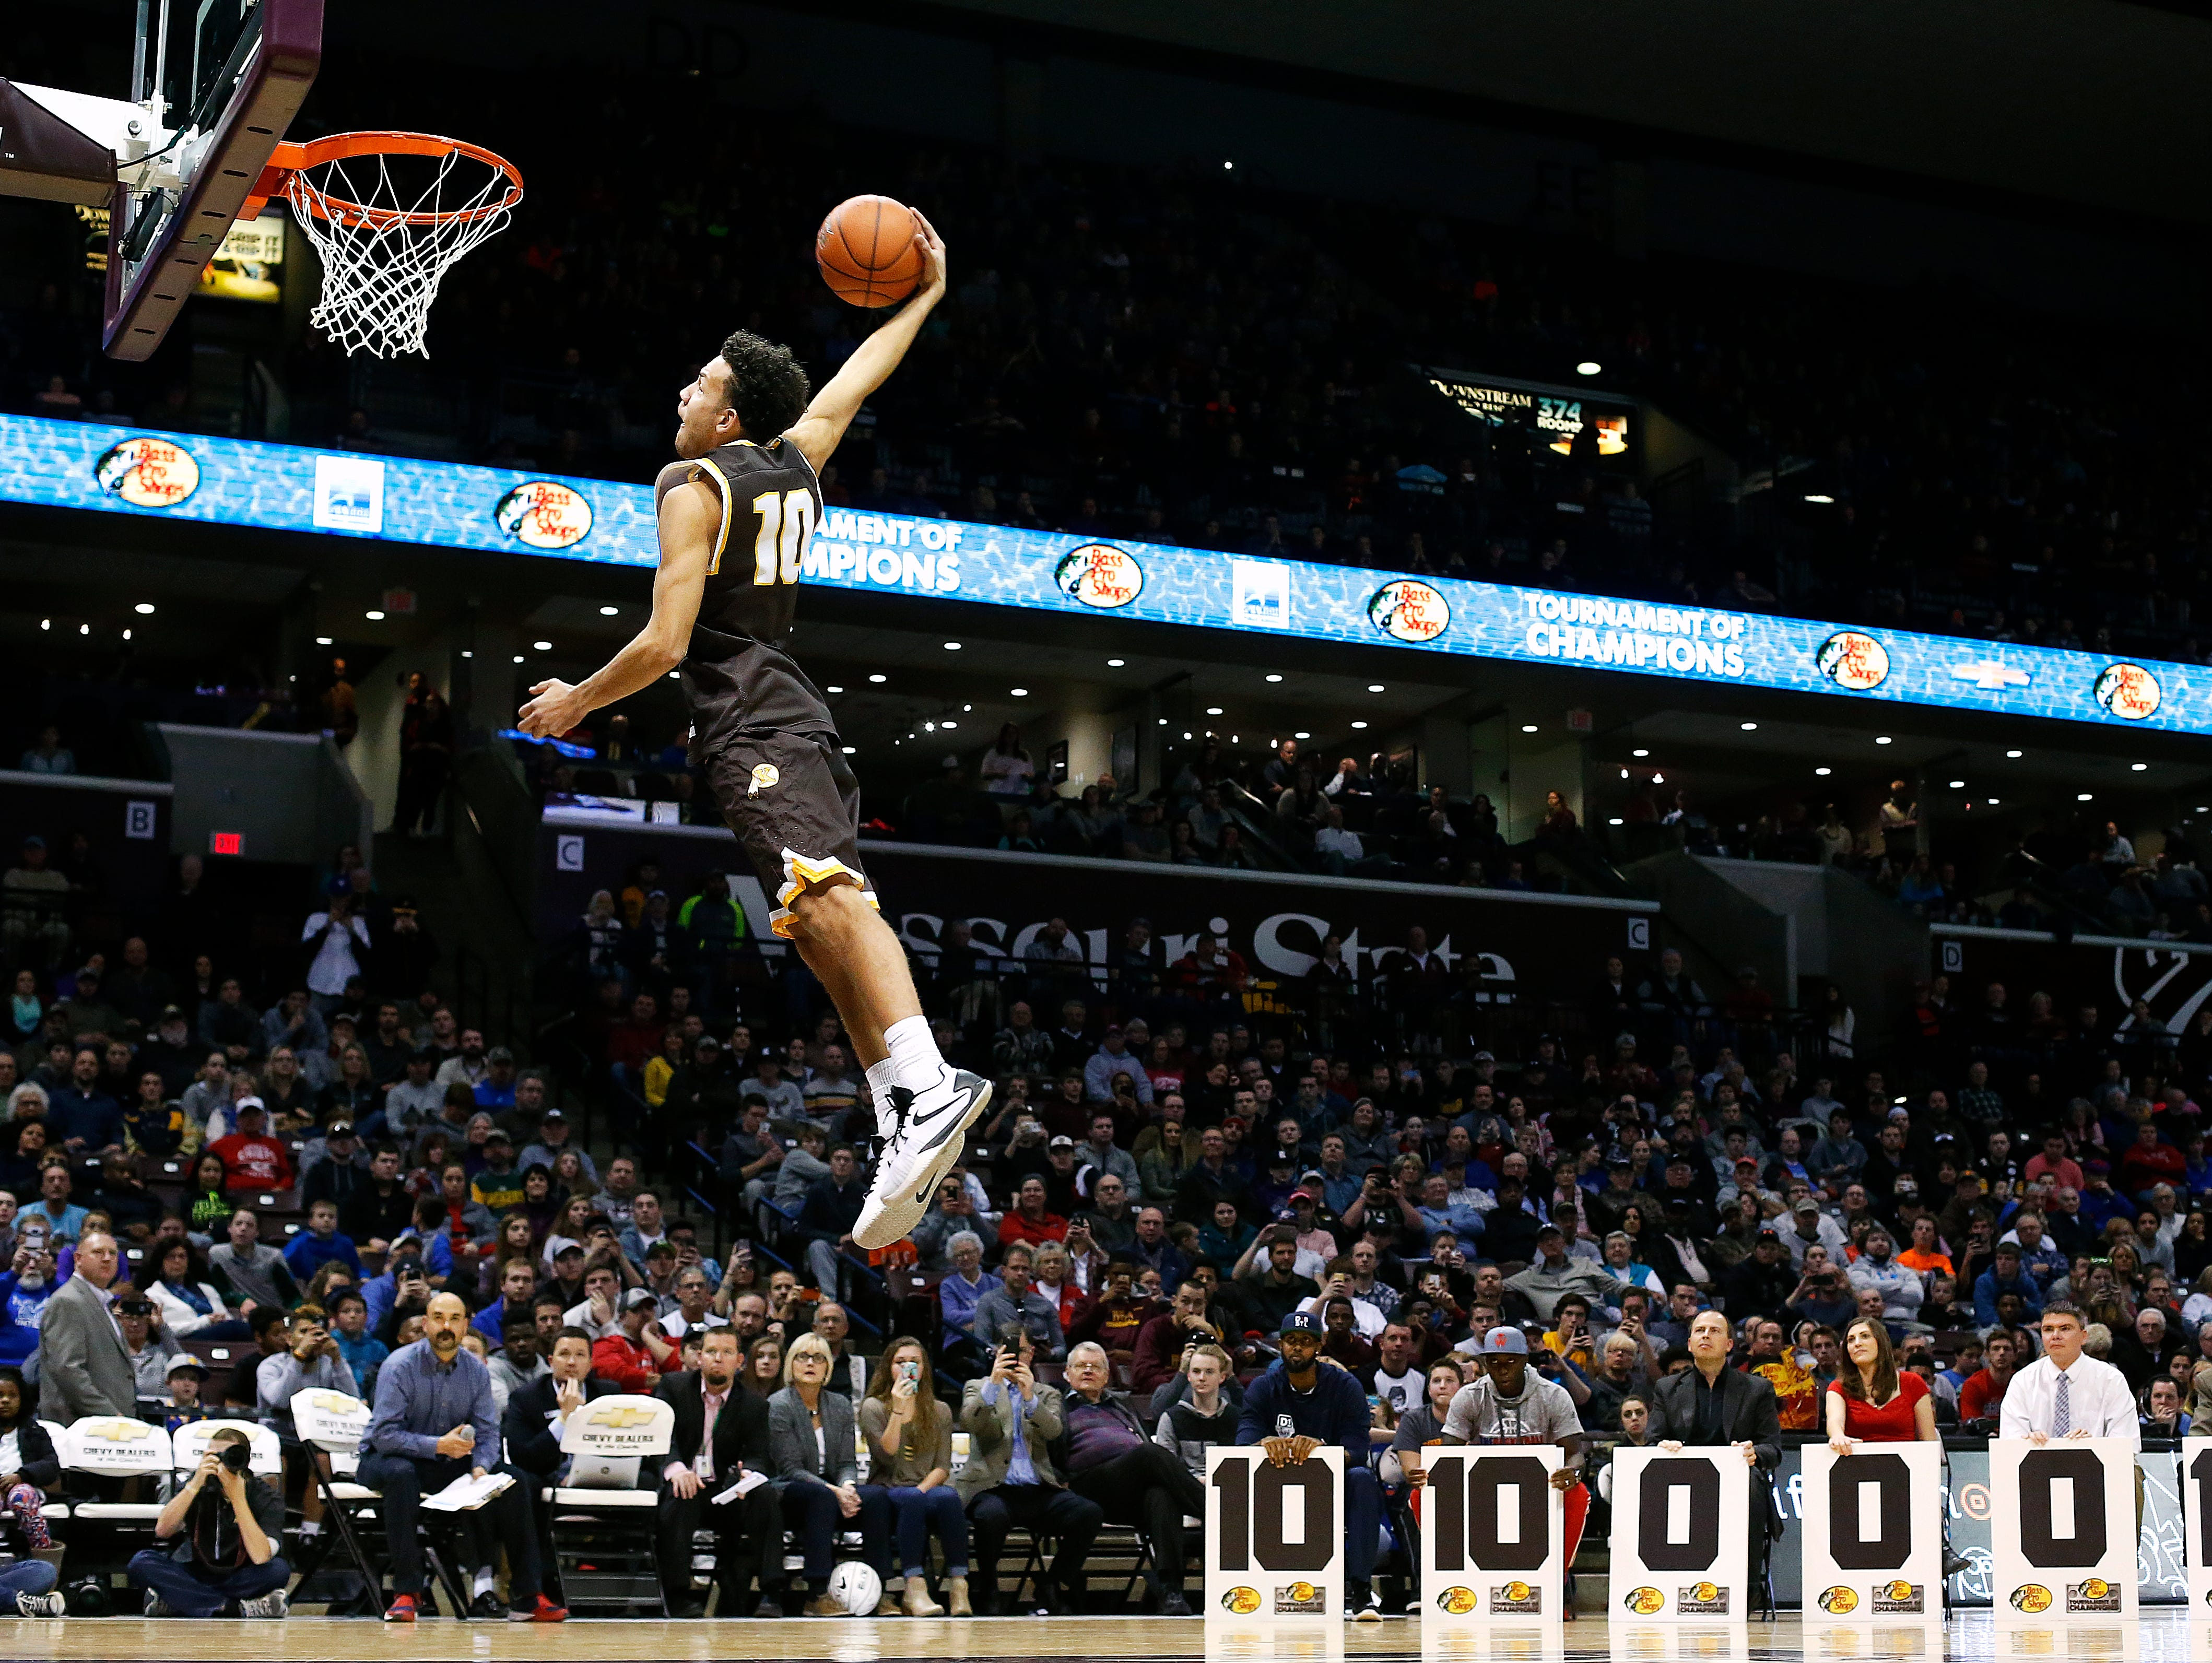 Kickapoo High School (Springfield, Mo.) guard Isaac Johnson dunks during the dunk contest portion of the 2016 Tournament of Champions at JQH Arena in Springfield, Mo. on Jan. 15, 2015. Bishop Gorman High School (Las Vegas, Nev.) guard Christian Popoola Jr. won first place in the contest.